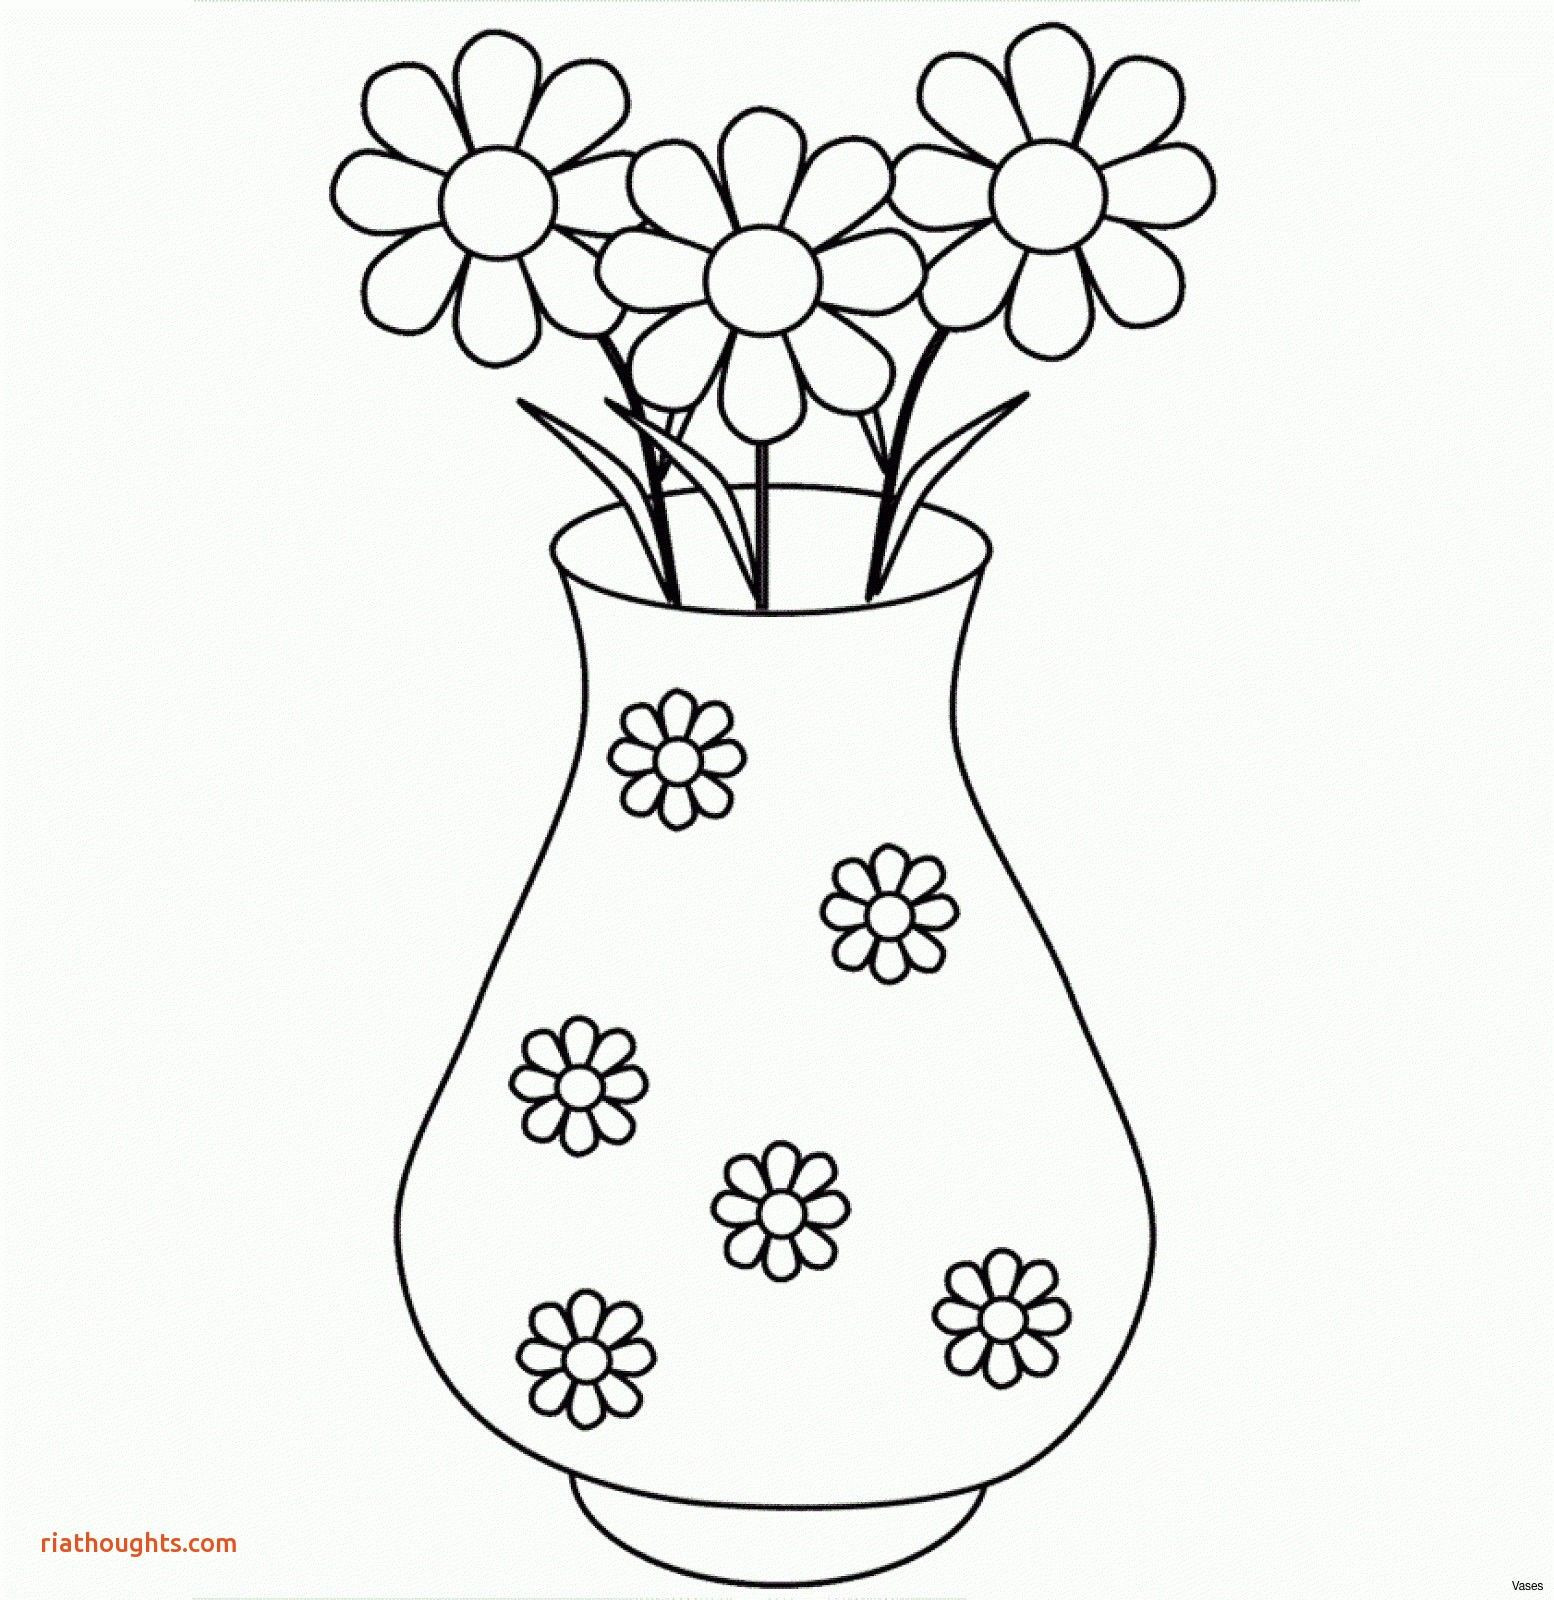 Hull Art Vase Of Vase In Spanish Inspirational Awesome Drawing for Kids the Weekly with Vase In Spanish Inspirational Awesome Drawing for Kids